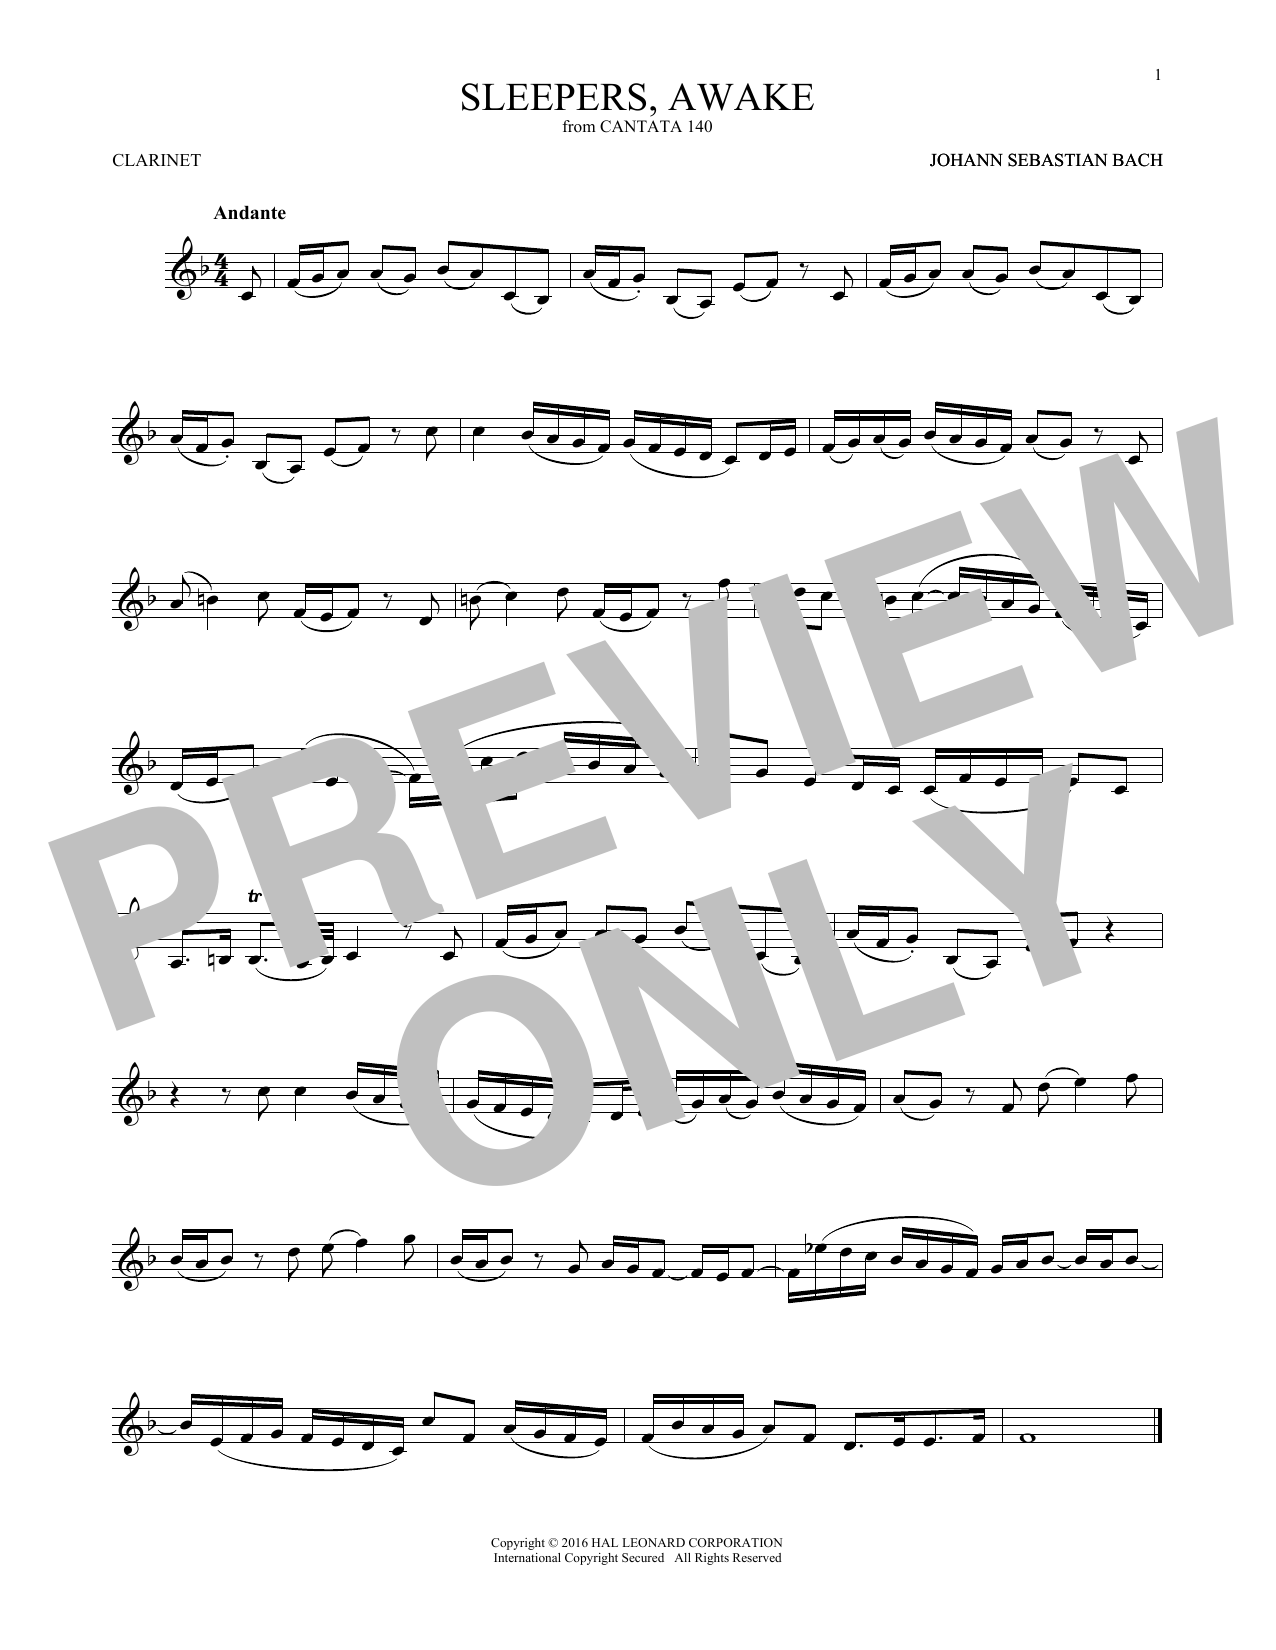 Johann Sebastian Bach Sleepers, Awake (Wachet Auf) sheet music notes and chords. Download Printable PDF.